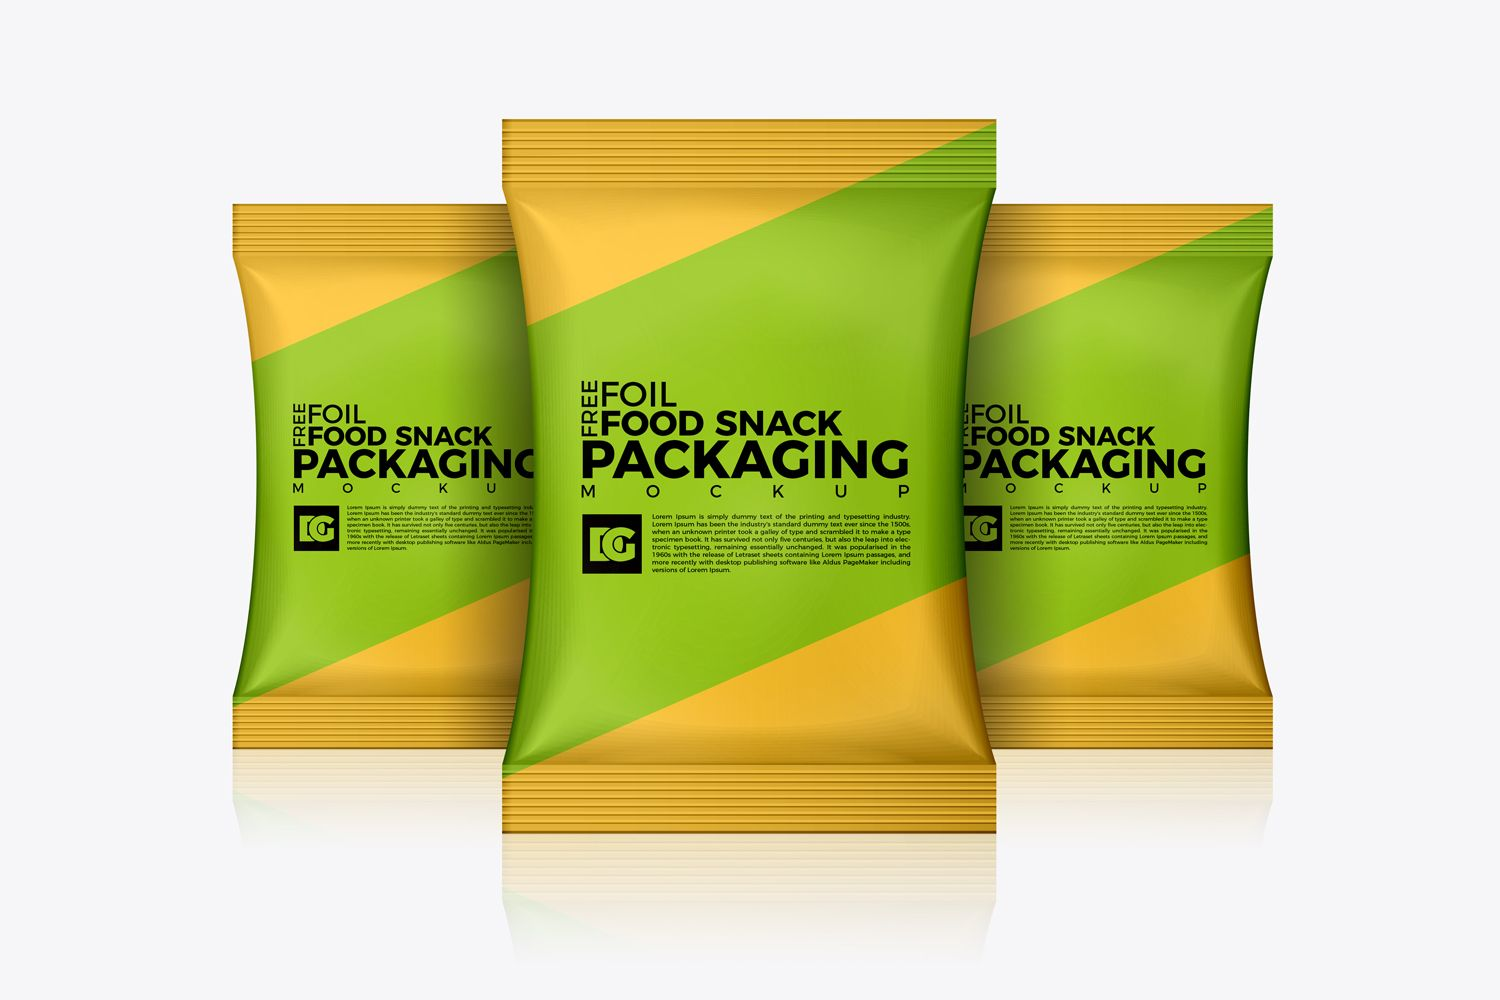 Download Free Foil Food Snack Packaging Mockup Psd 7 39 Mb Dribbble Graphics Free Photoshop Mockup Psd Foil Packaging Mockup Free Packaging Mockup Free Food PSD Mockup Templates